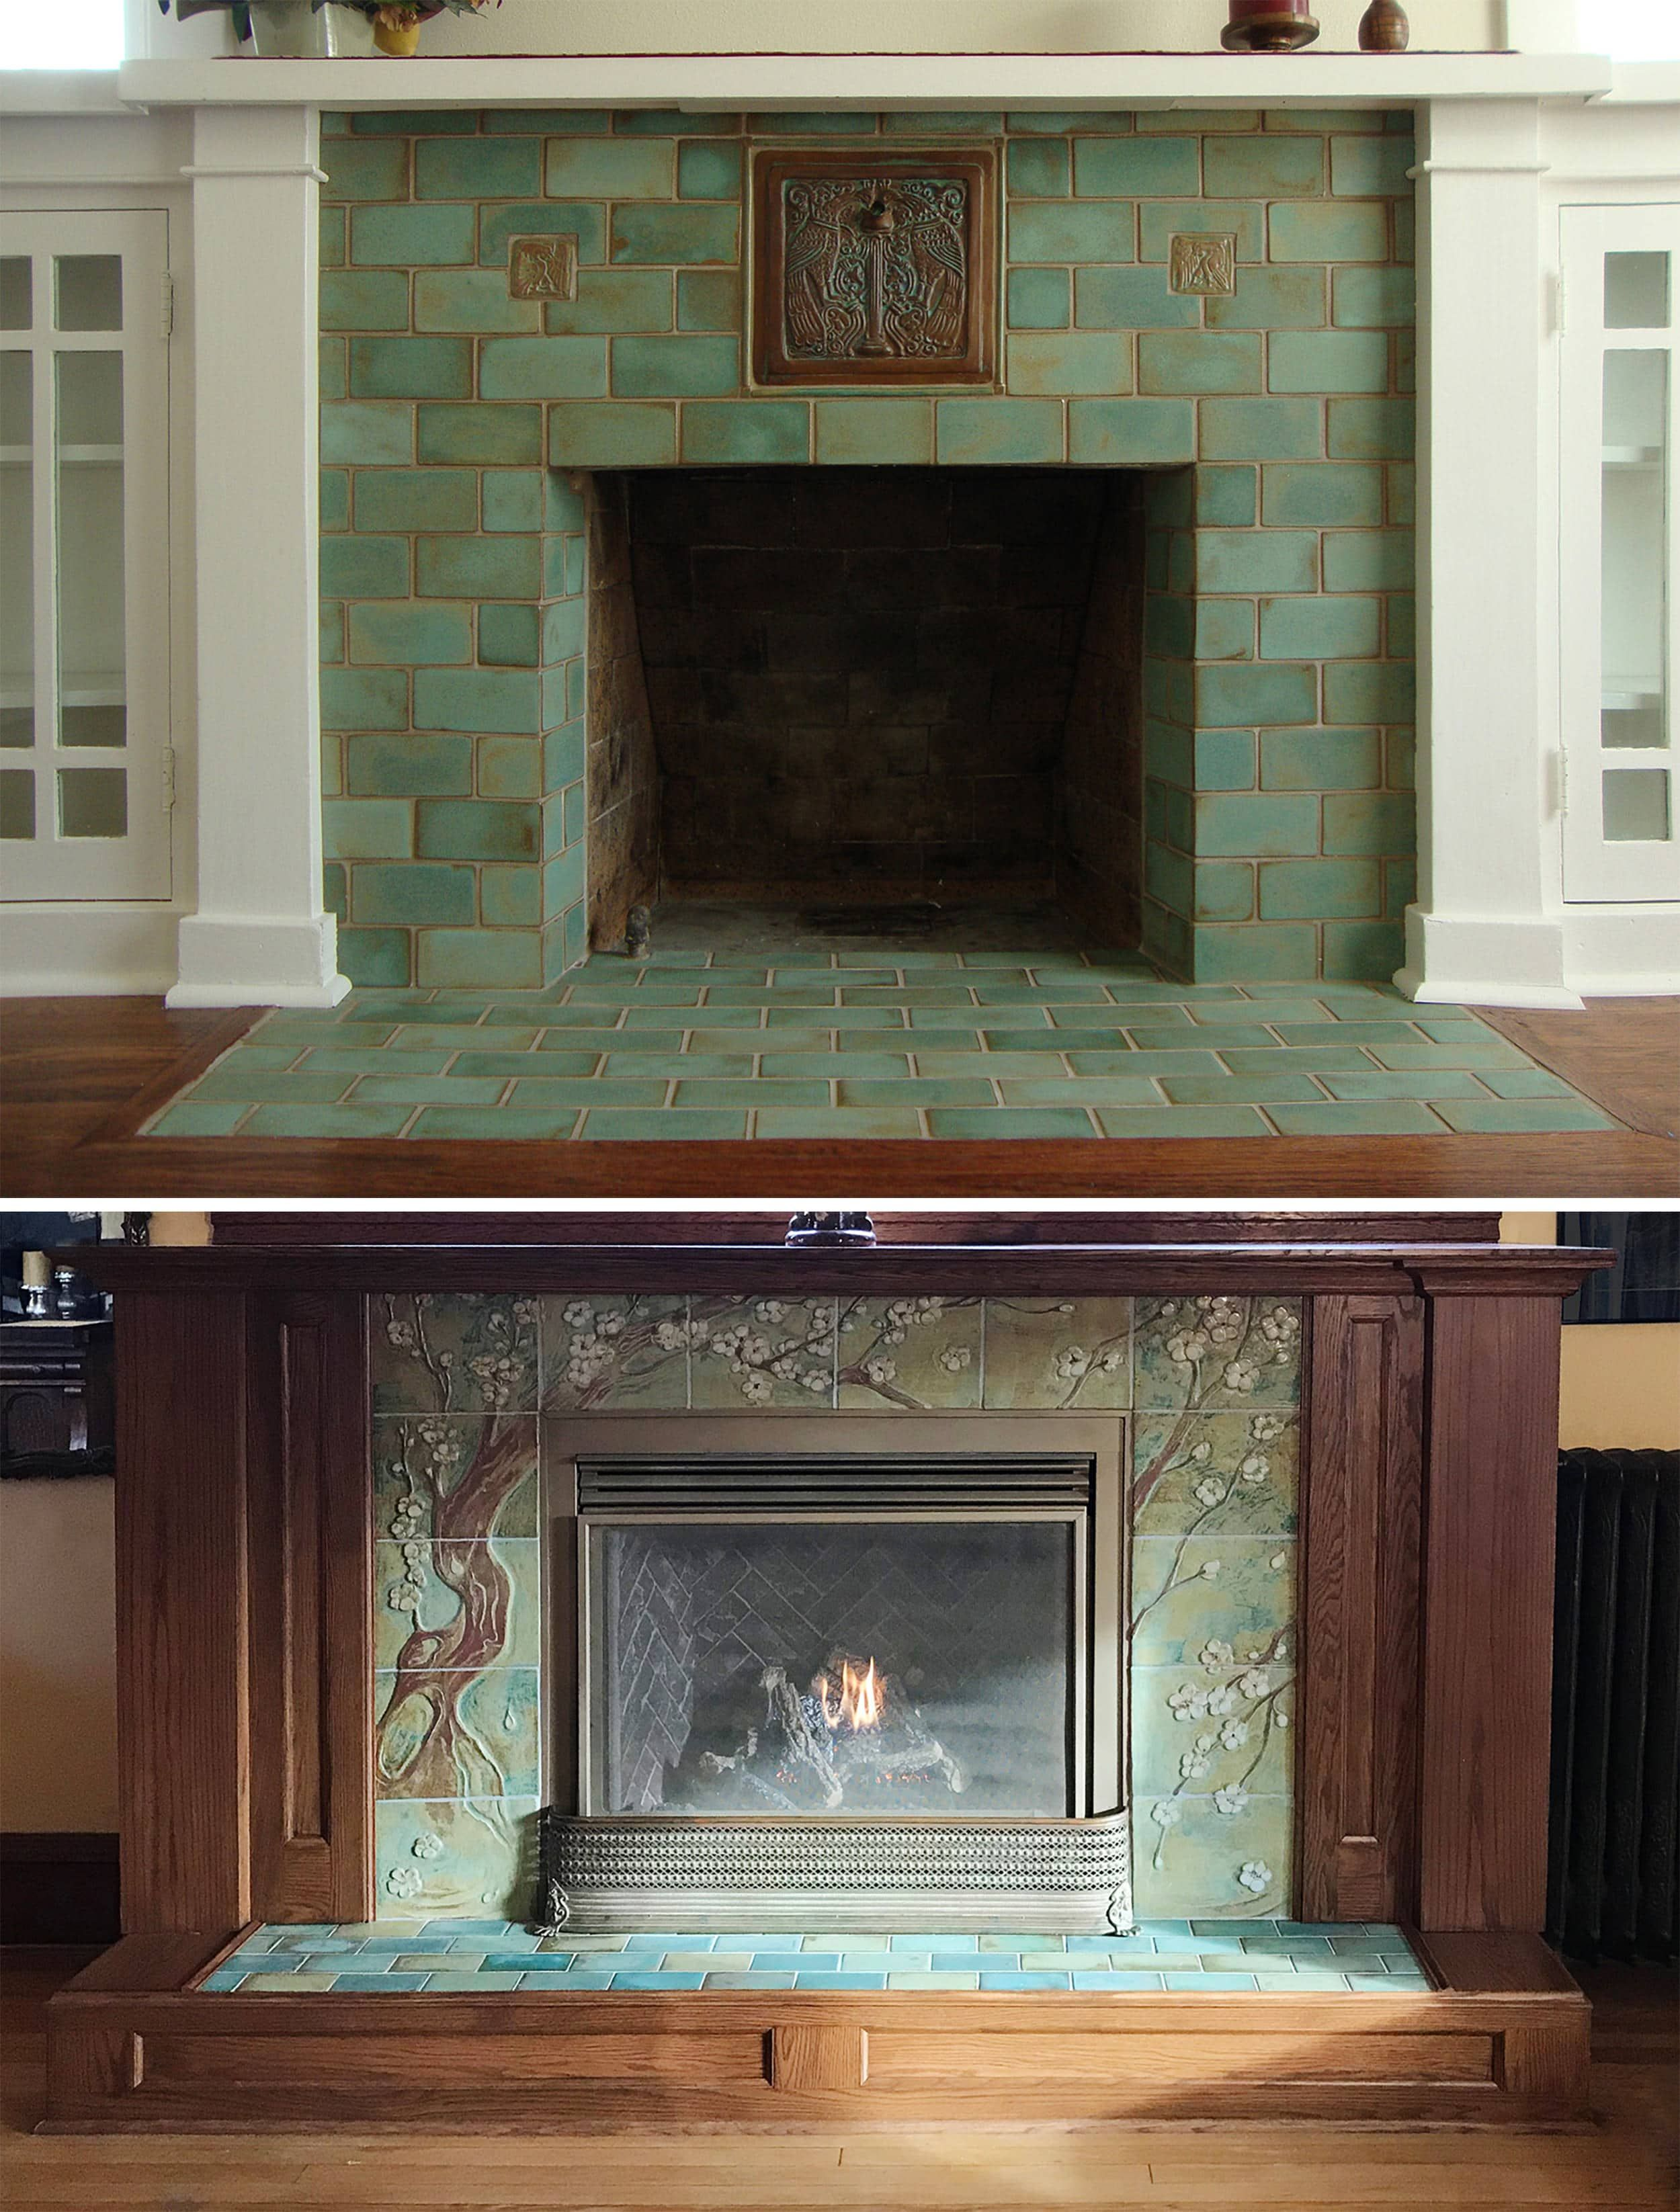 Do You Have To Pick A Classic Tile When Renovating An Older Home Hearth Tiles Craftsman Bungalows Fireplace Tile